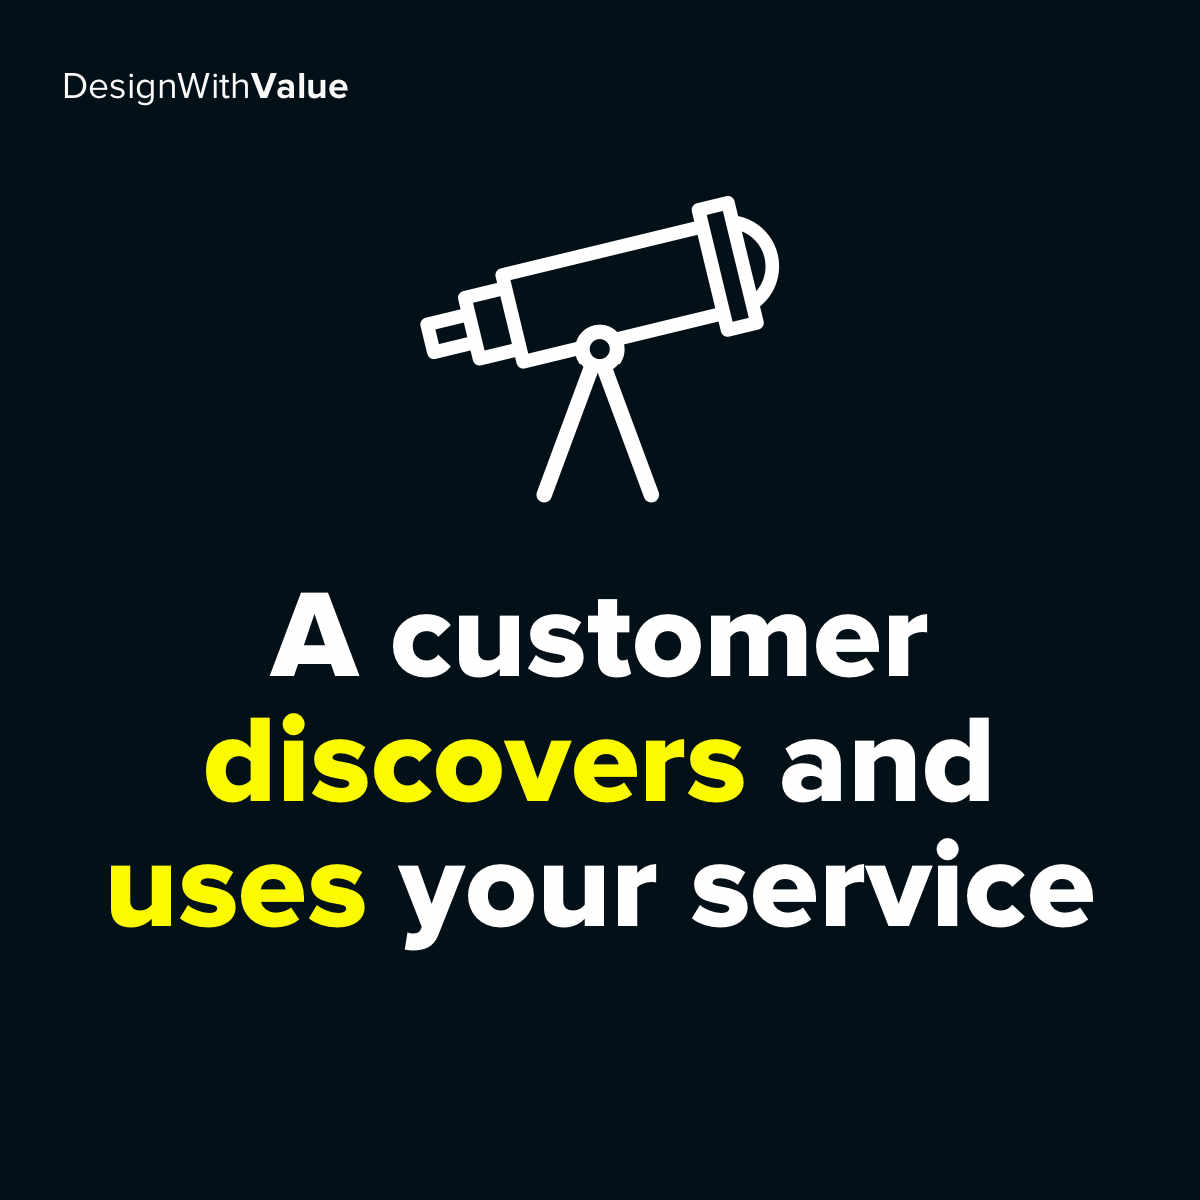 1. A customer discovers and uses your service.